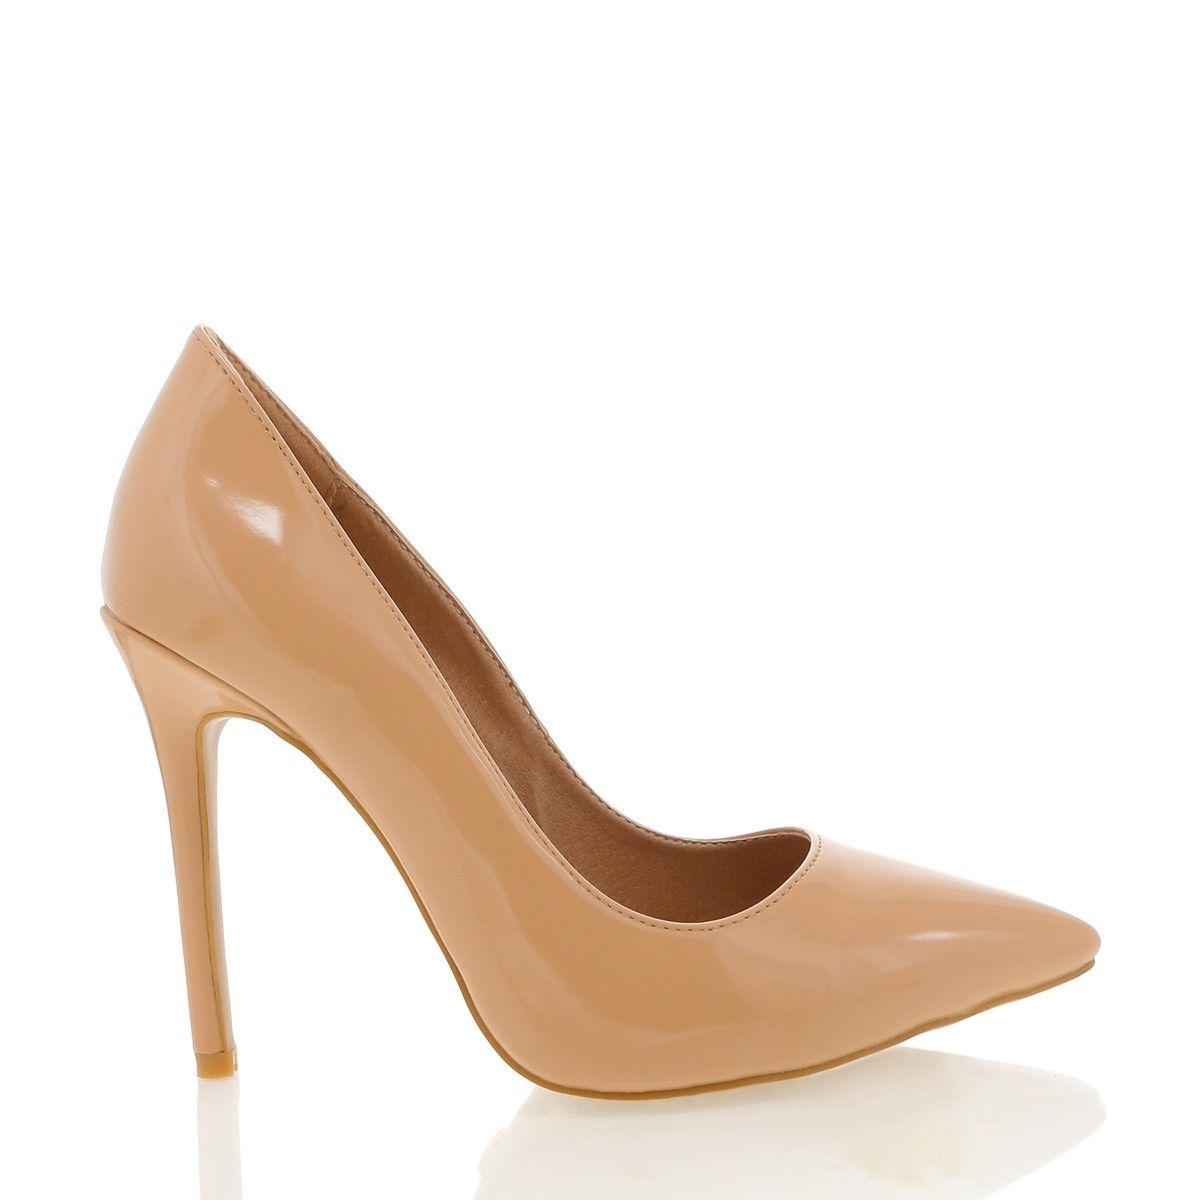 ec64cd71a34 Indra nude patent in 2019 | SHOP NEW ARRIVALS | Heels, Stiletto ...